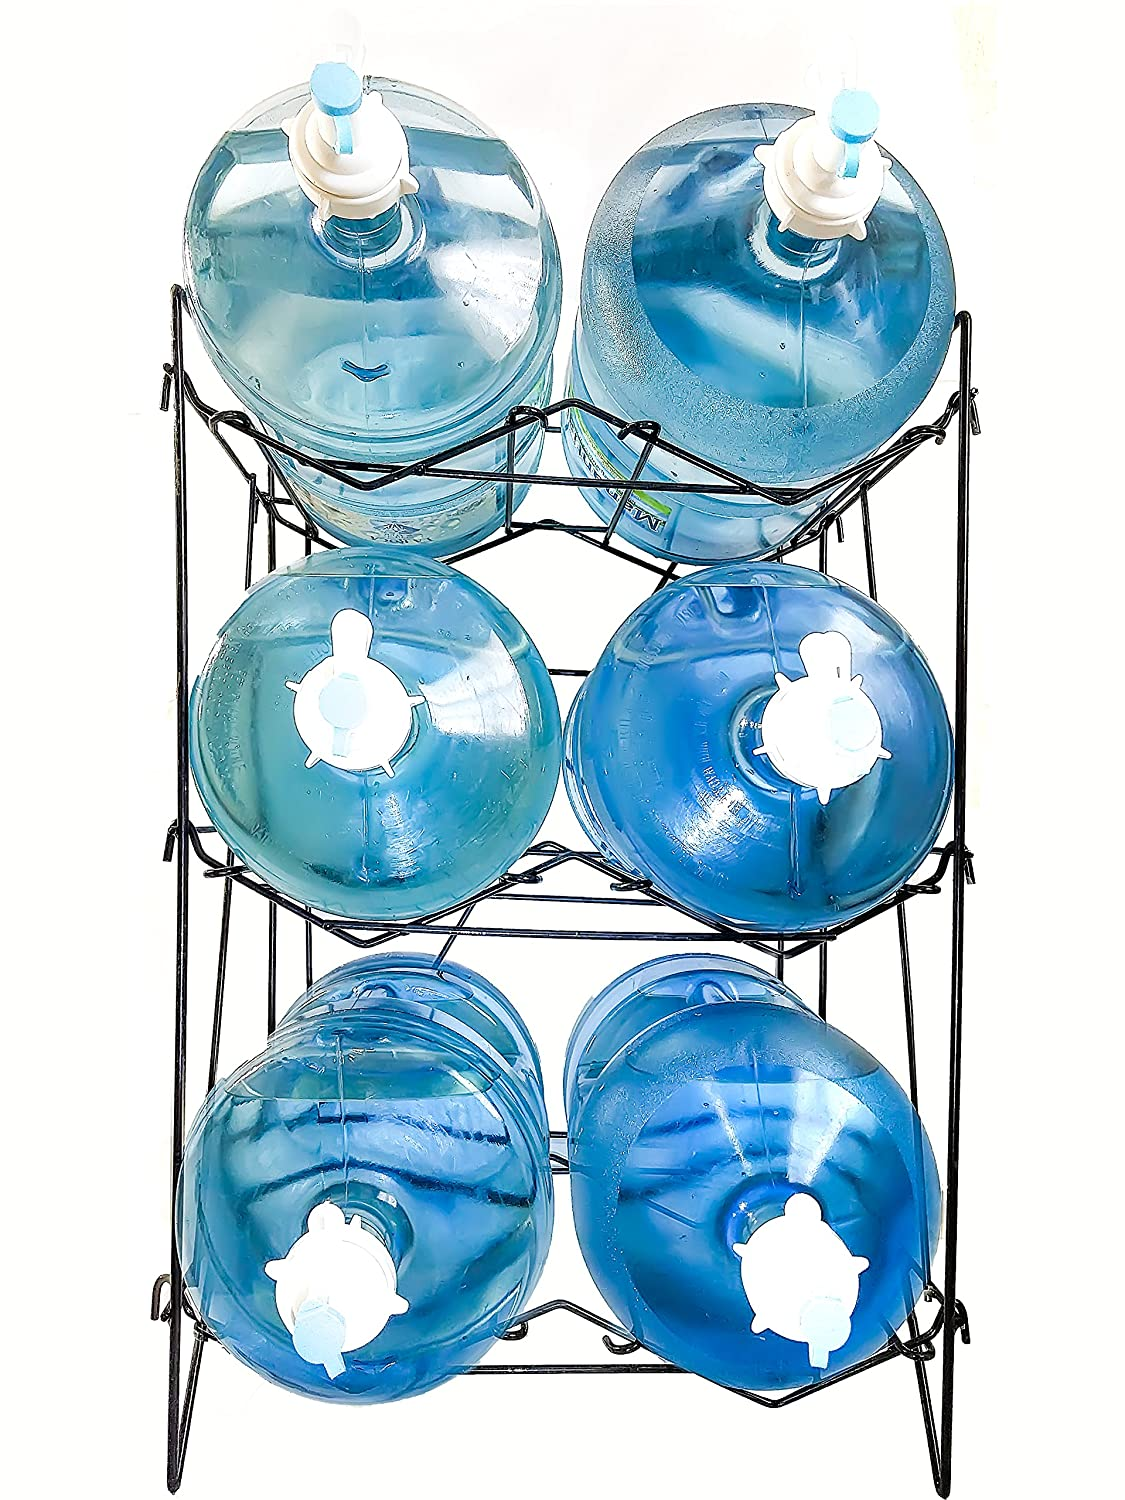 Future BuyZ 5 Gallon Water Bottle Shelf Rack Holder Stand Storage No Assembly Instant Set Up Stainless Steel Heavy Duty Collapsible Sturdy Durable Portable (3 Shelves) BR-X6